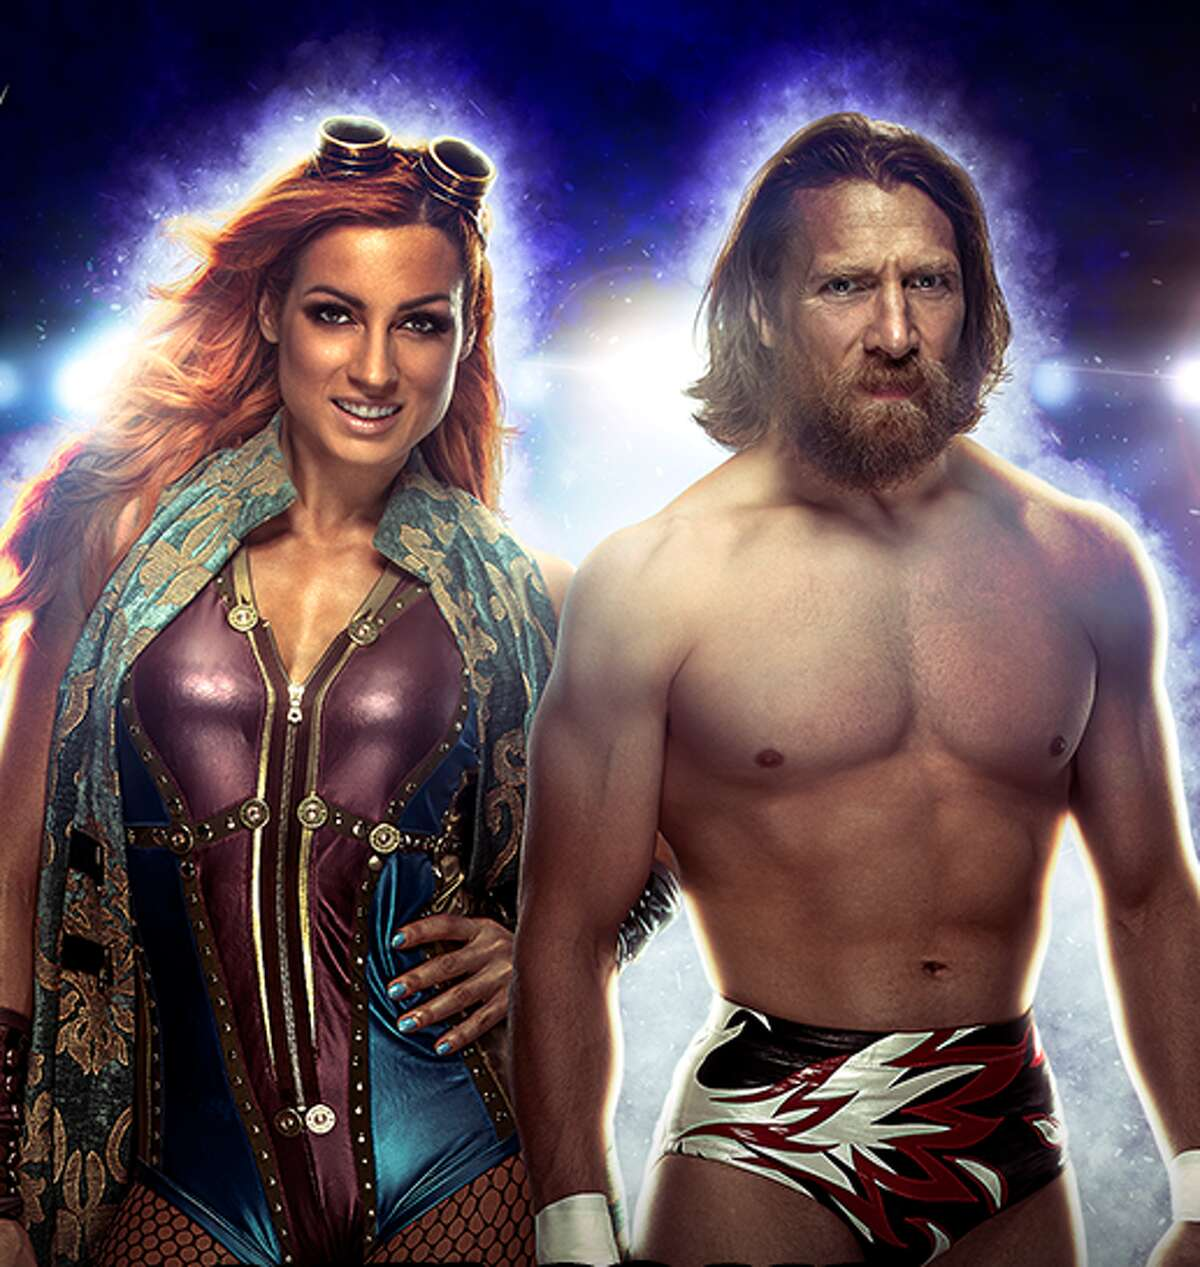 """WWE superstar and self-described """"amateur environmentalist"""" Daniel Bryan (right), as well as Becky """"The Man"""" Lynch, will attend the Celebrity Fan Fest in San Antonio this summer."""